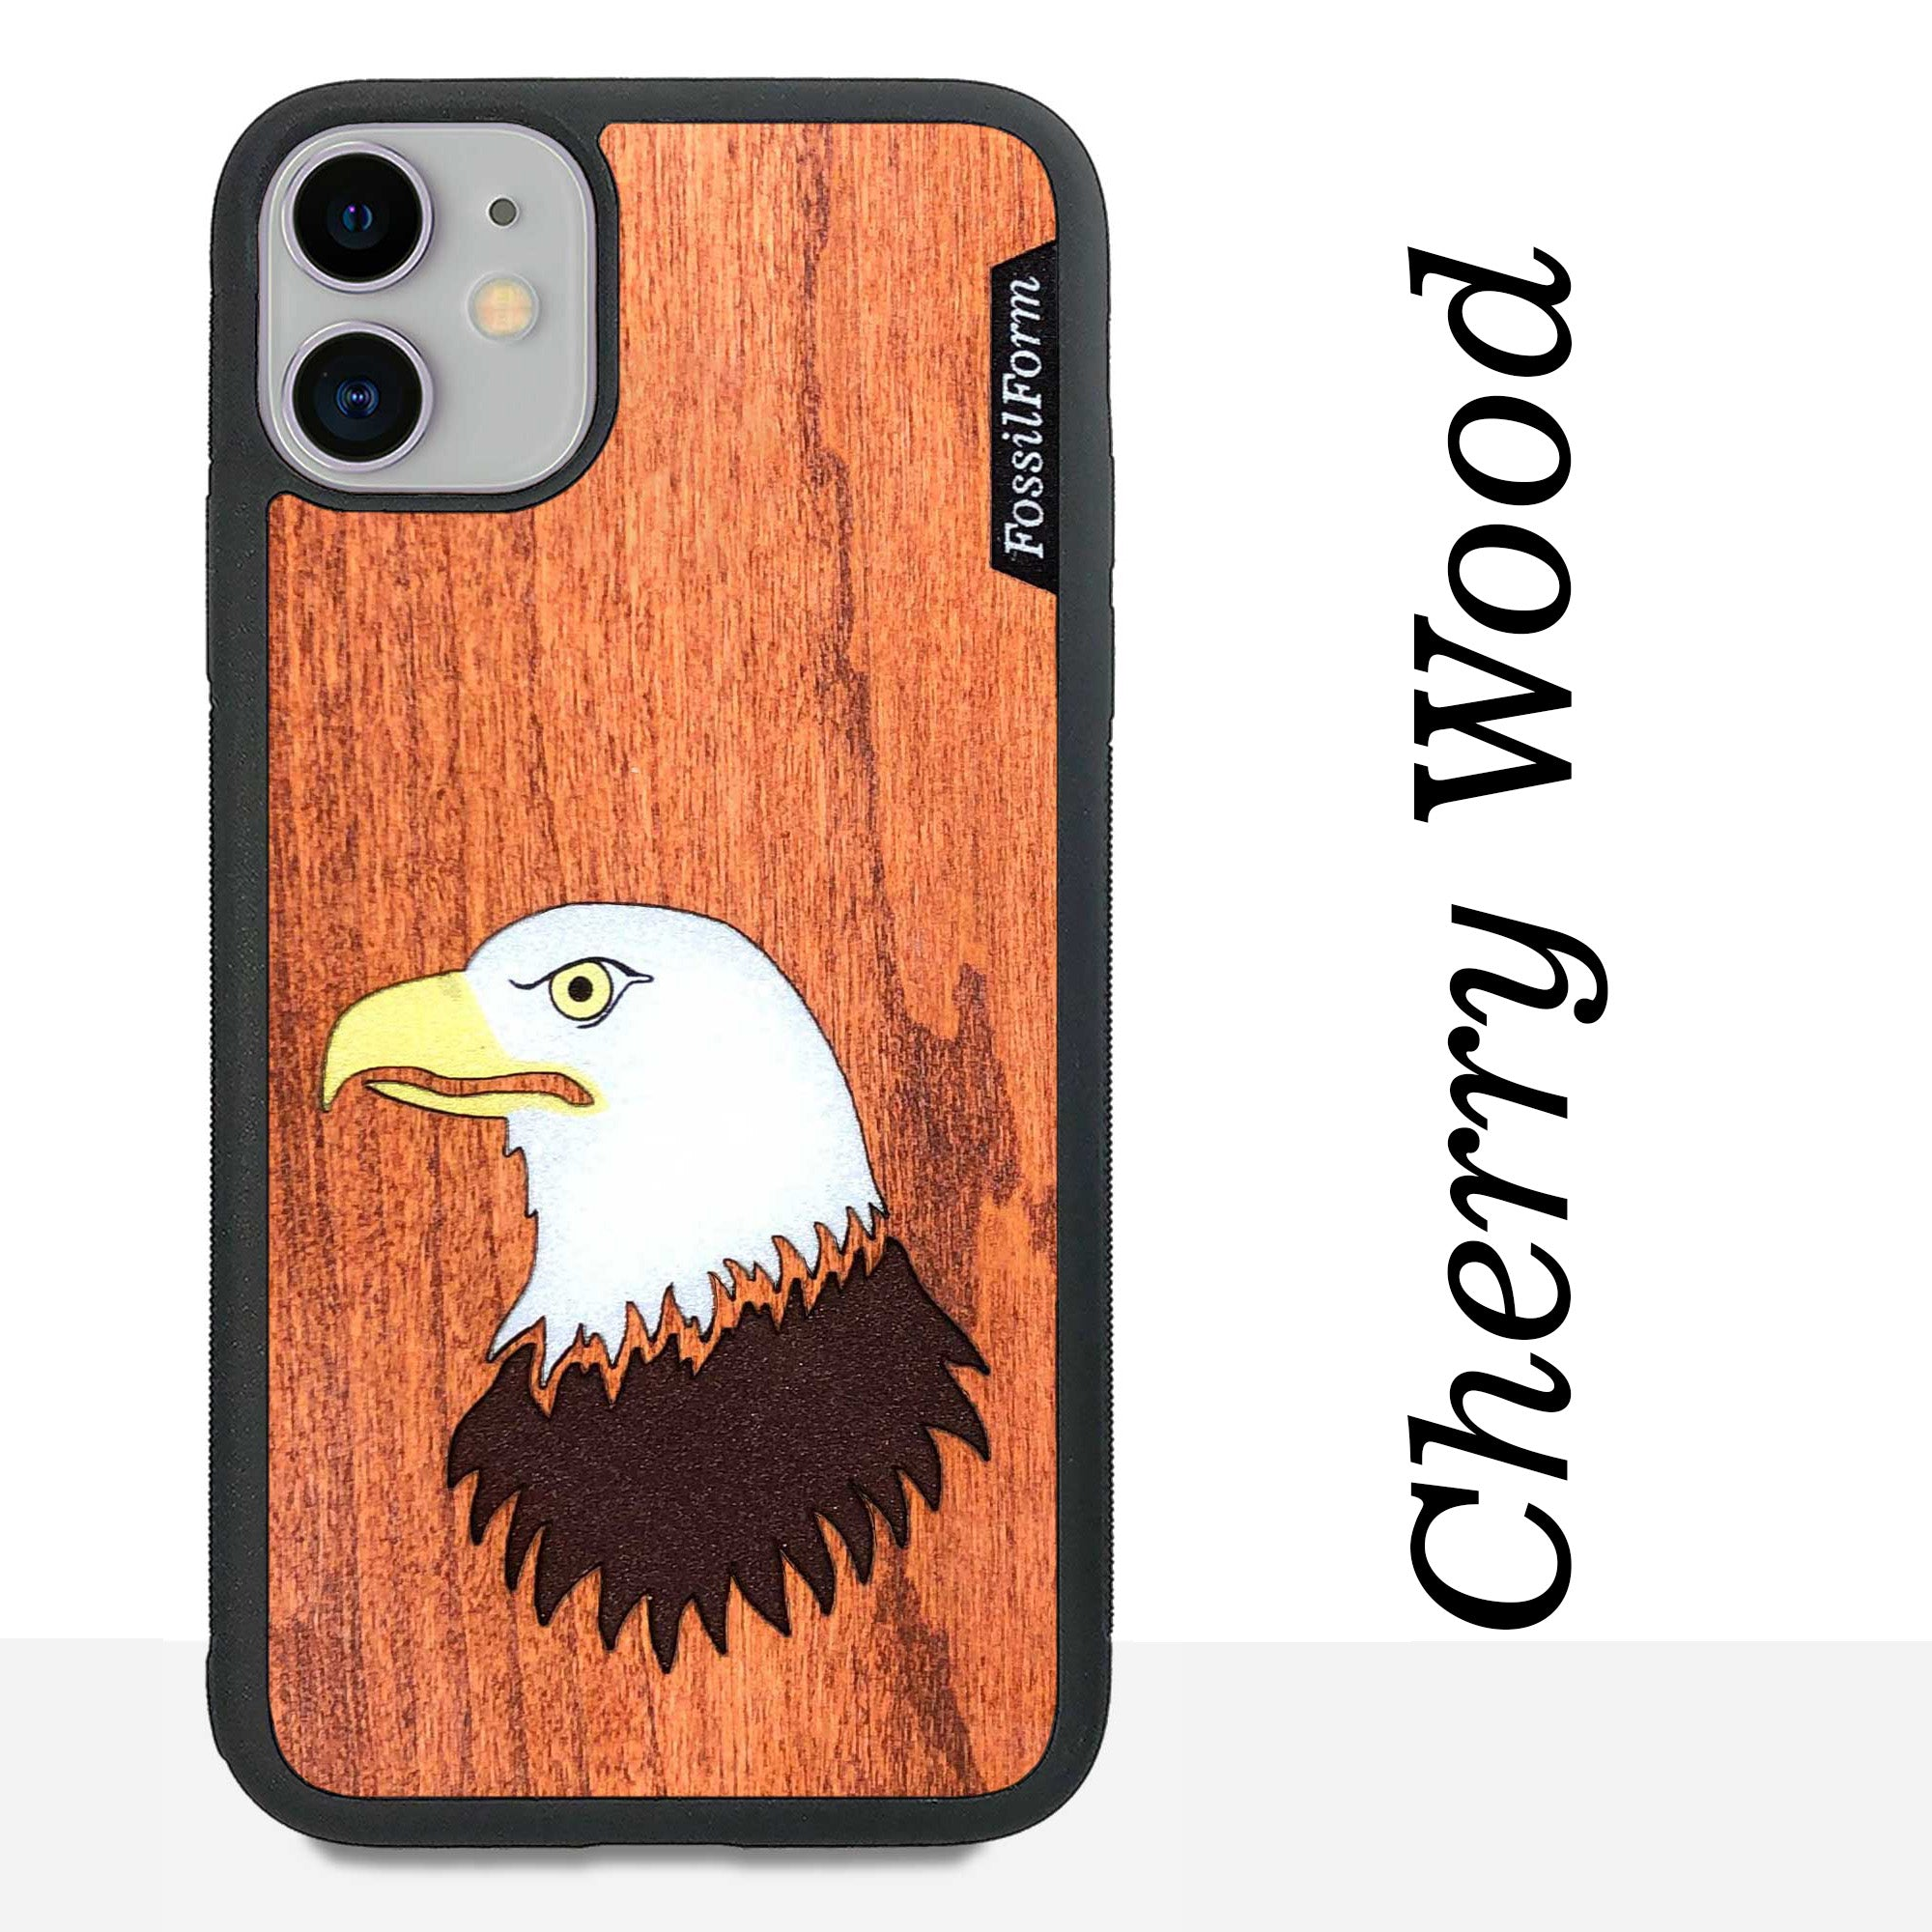 Bald Eagle - Wood & Resin Case - Black